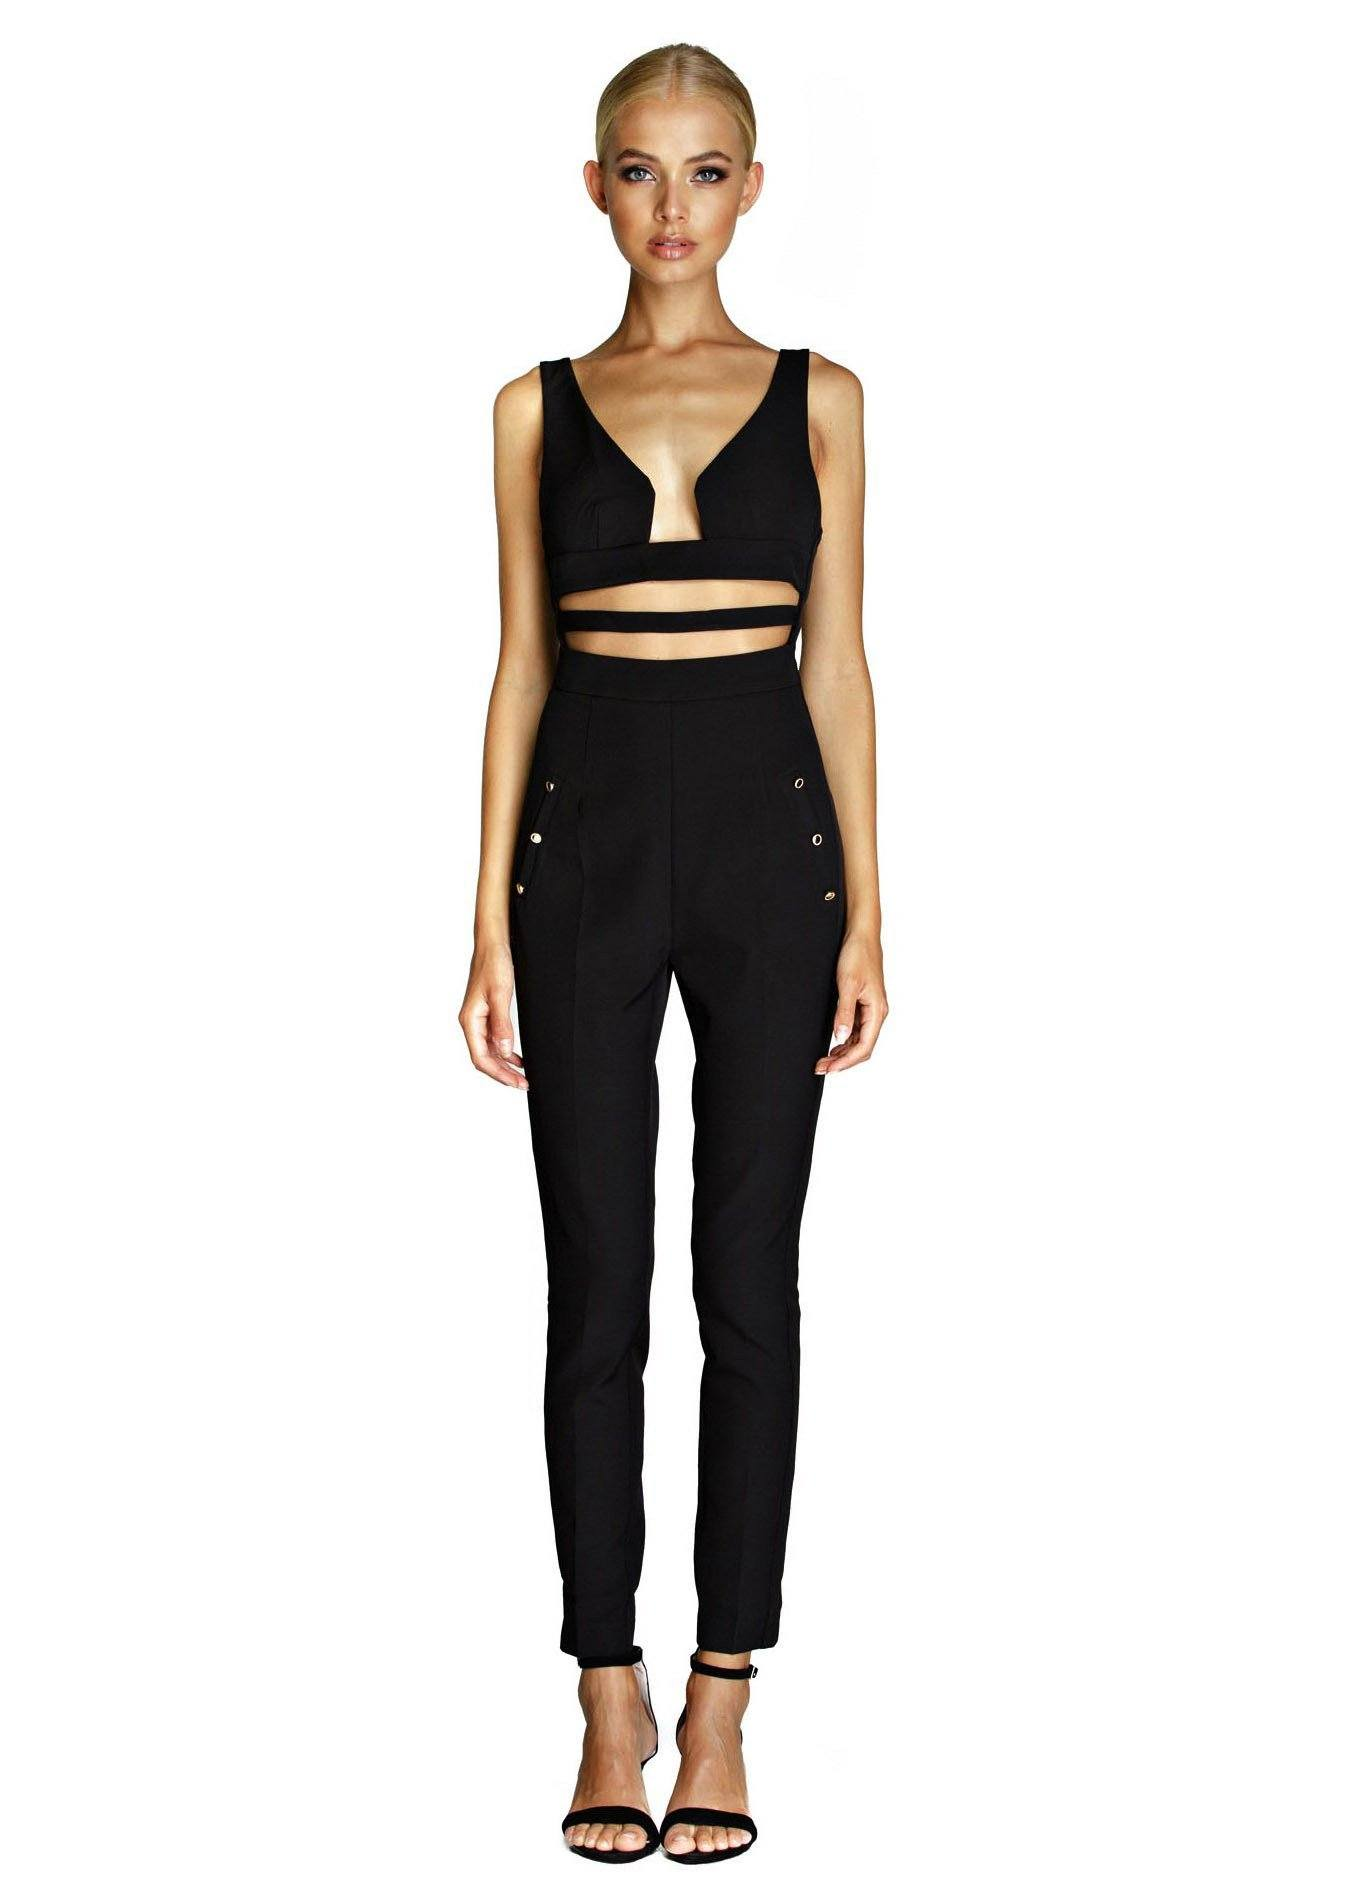 Designer black sleeveless jumpsuit with V neck, waist cutout design, skinny legs and gold buckles